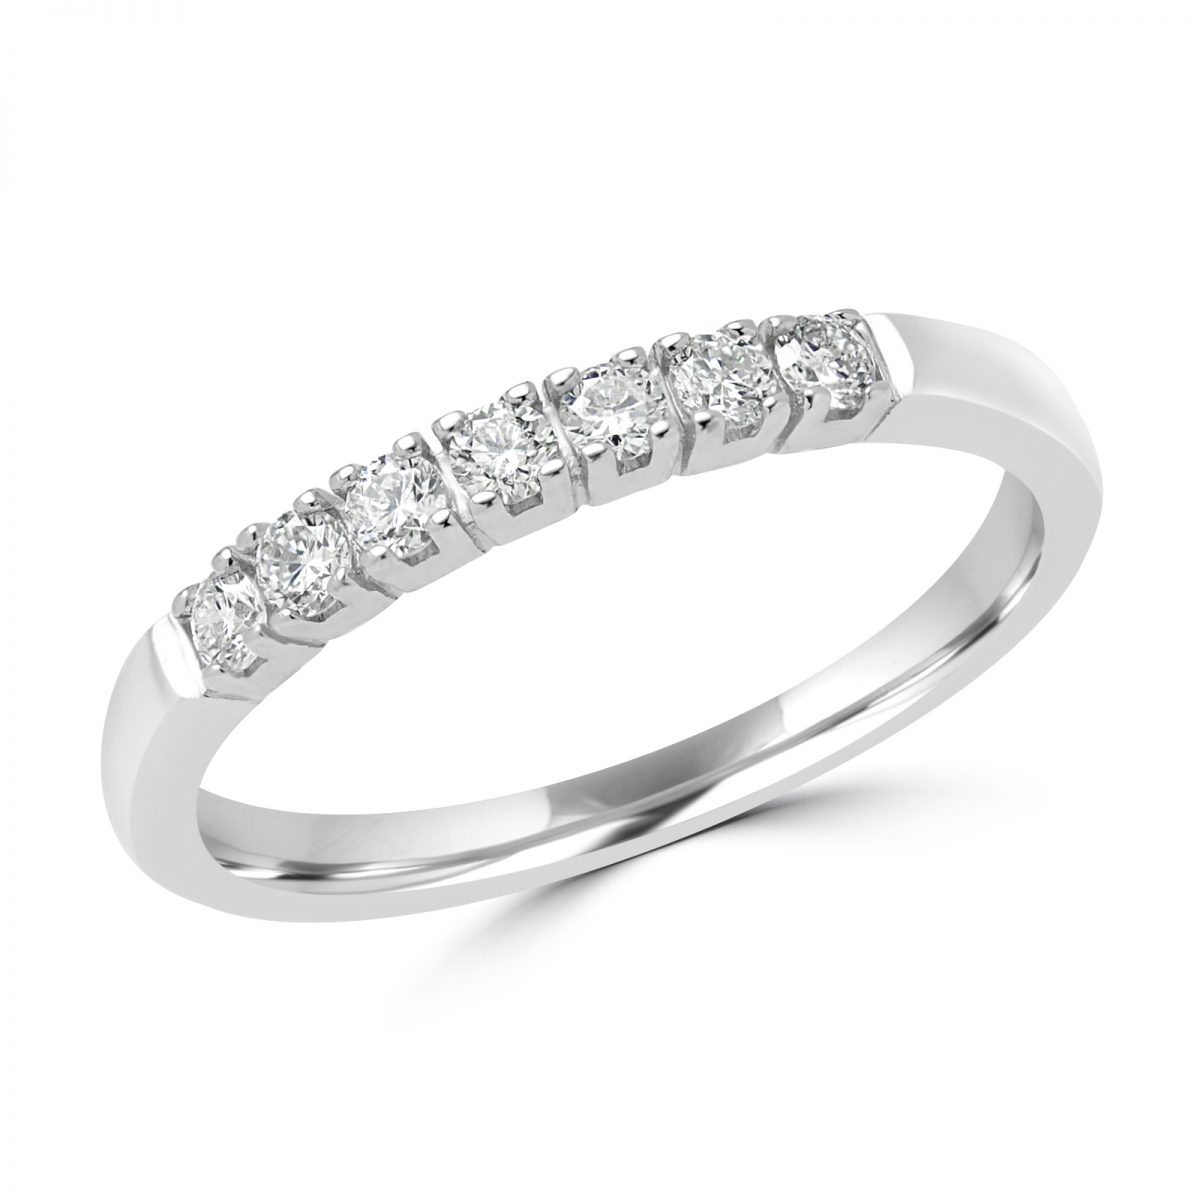 over p ring band diamond all ct diamonds white gold bands wrap guard solitaire enhancer wedding